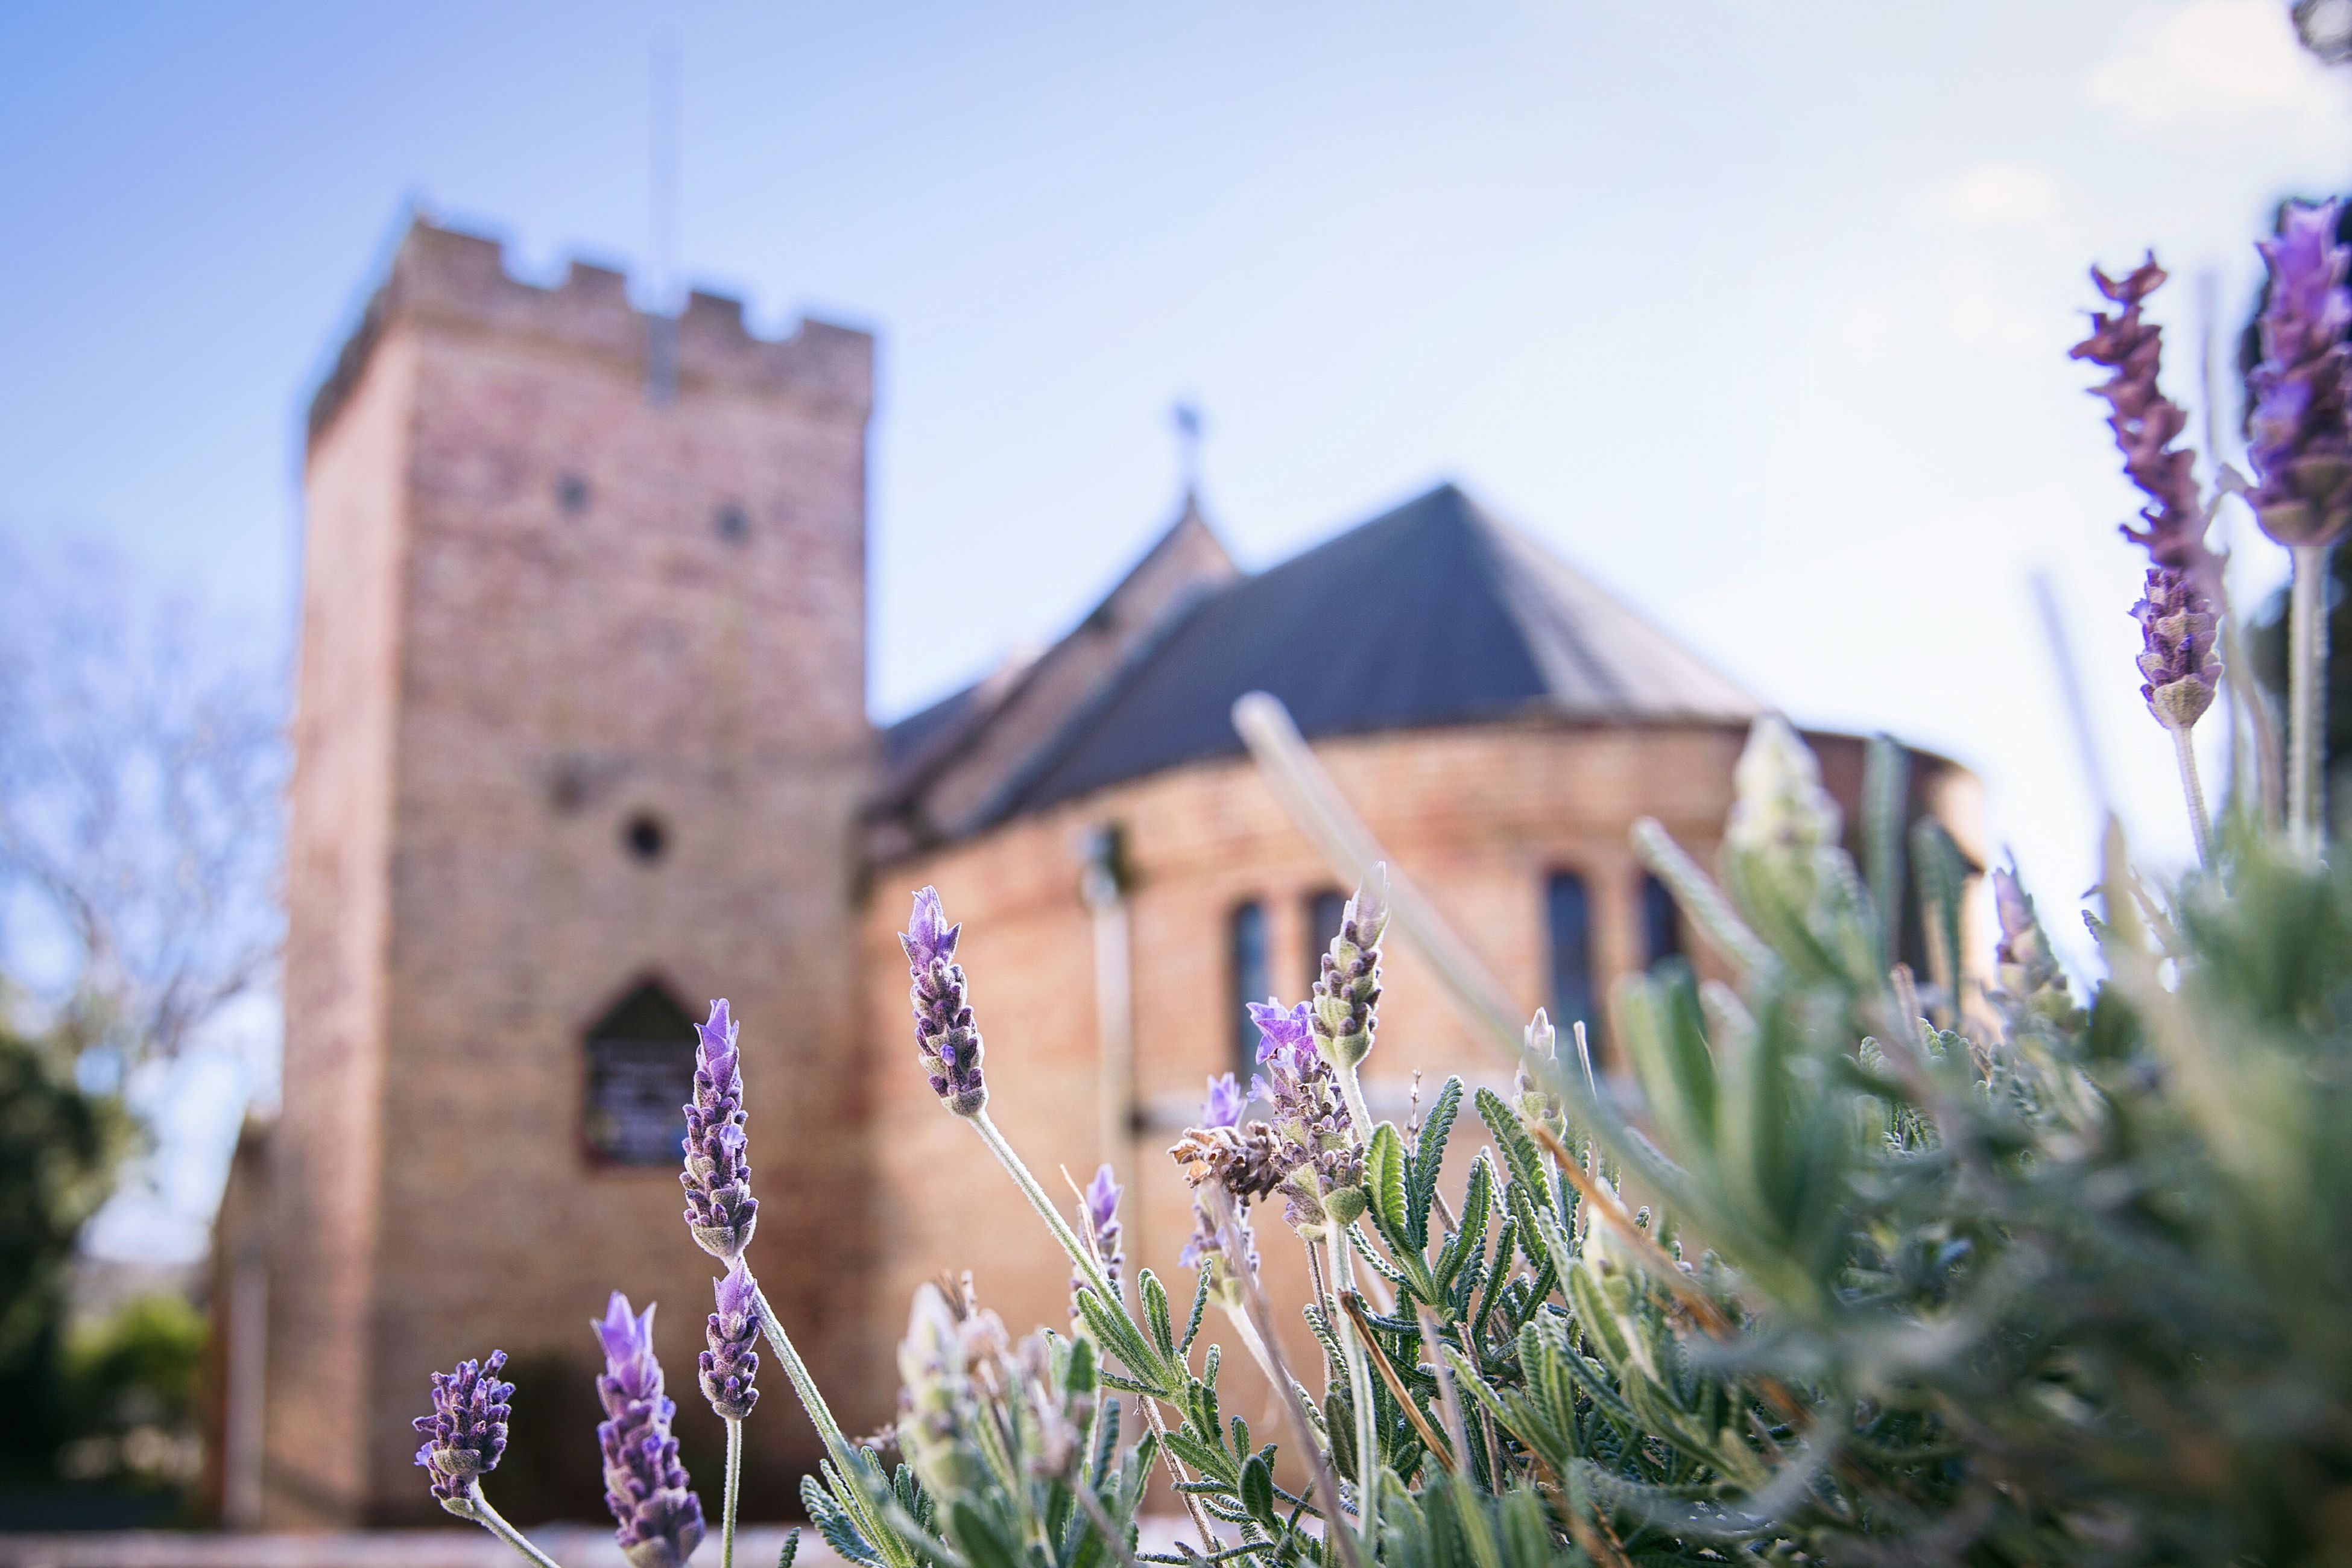 architecture, history, built structure, building exterior, no people, day, outdoors, flower, nature, sky